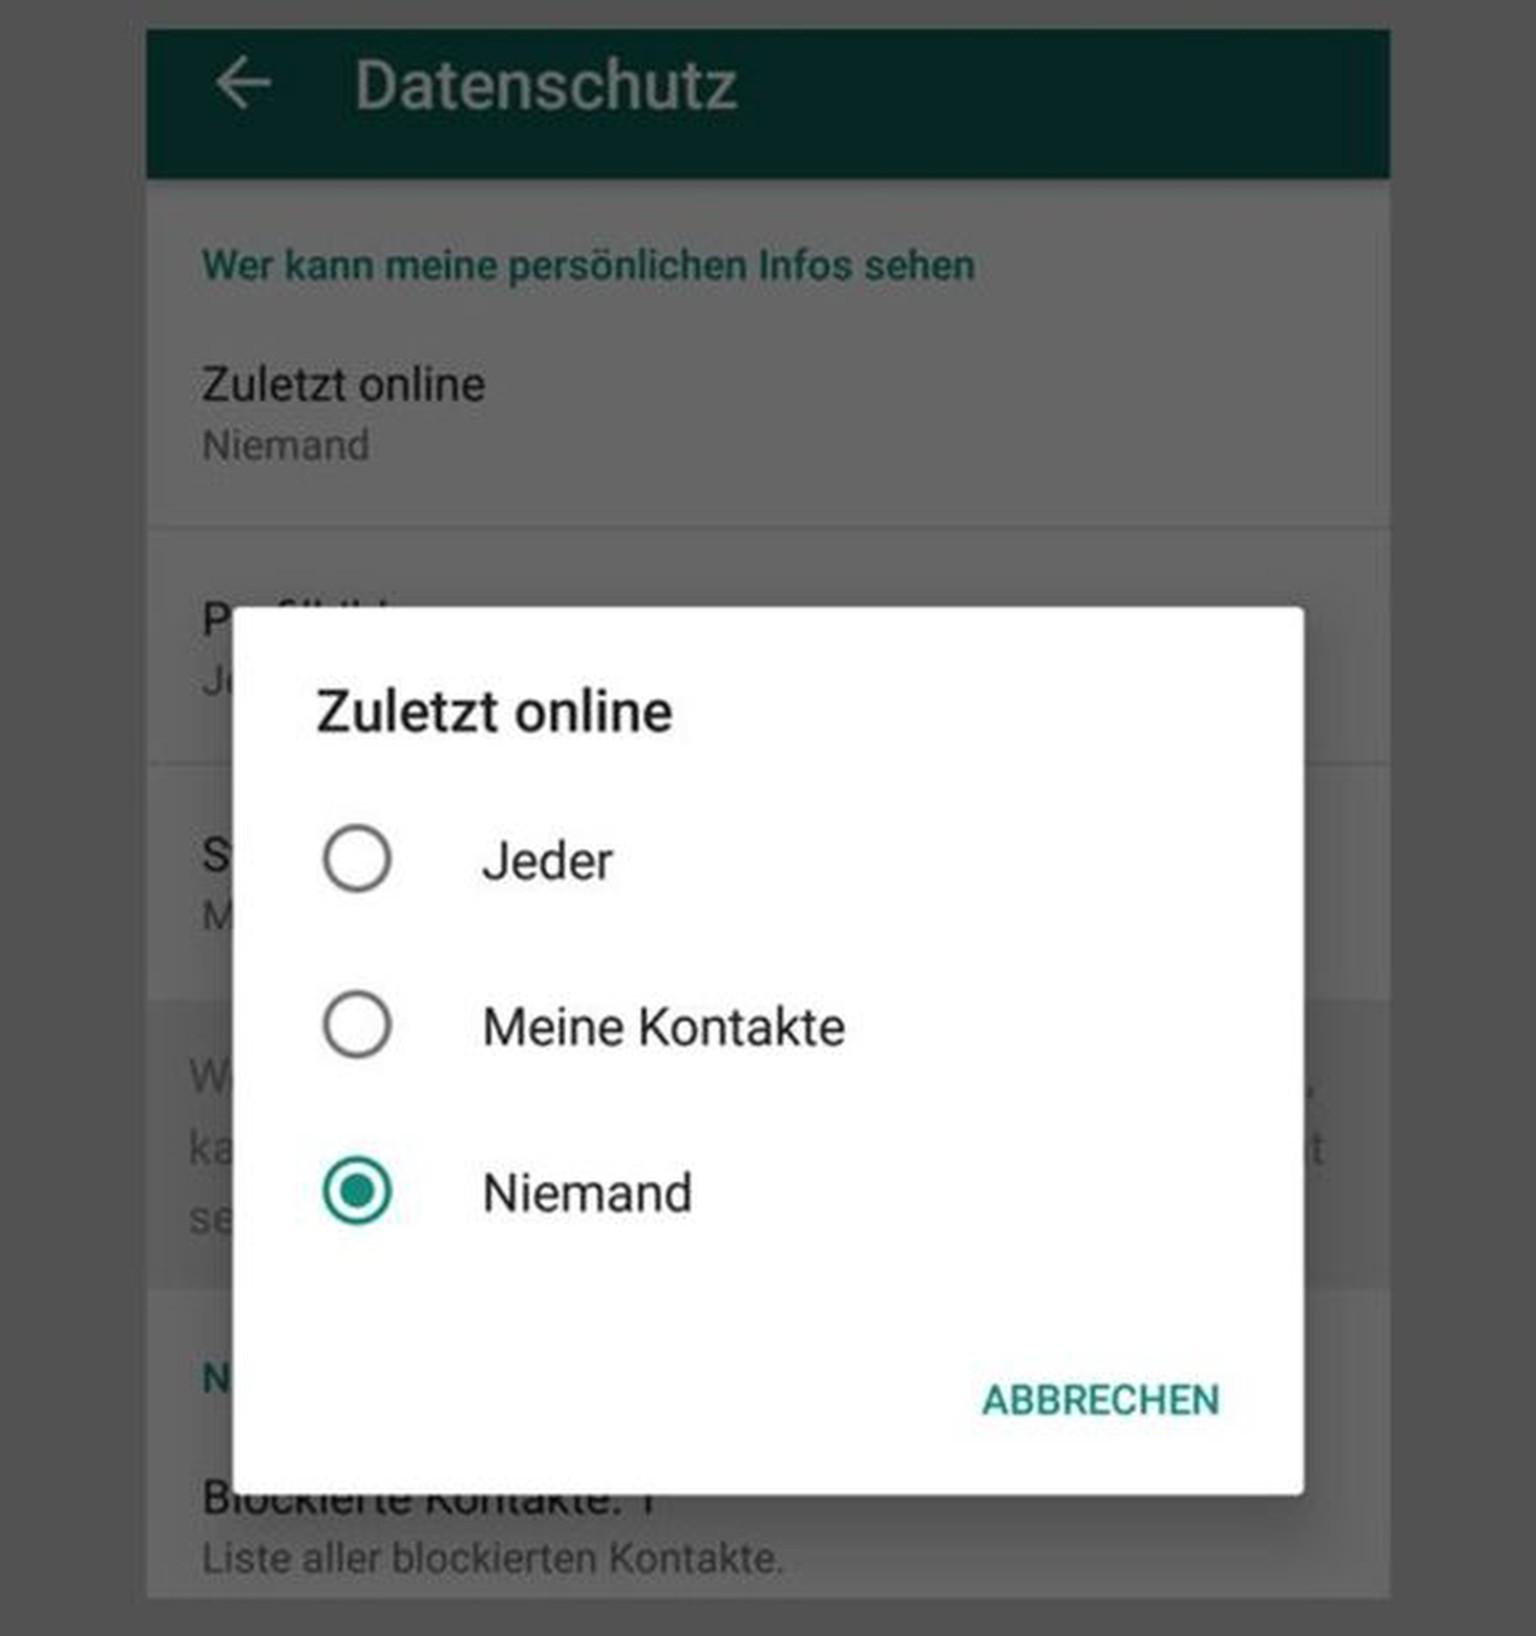 daueronline bei whatsapp iphone